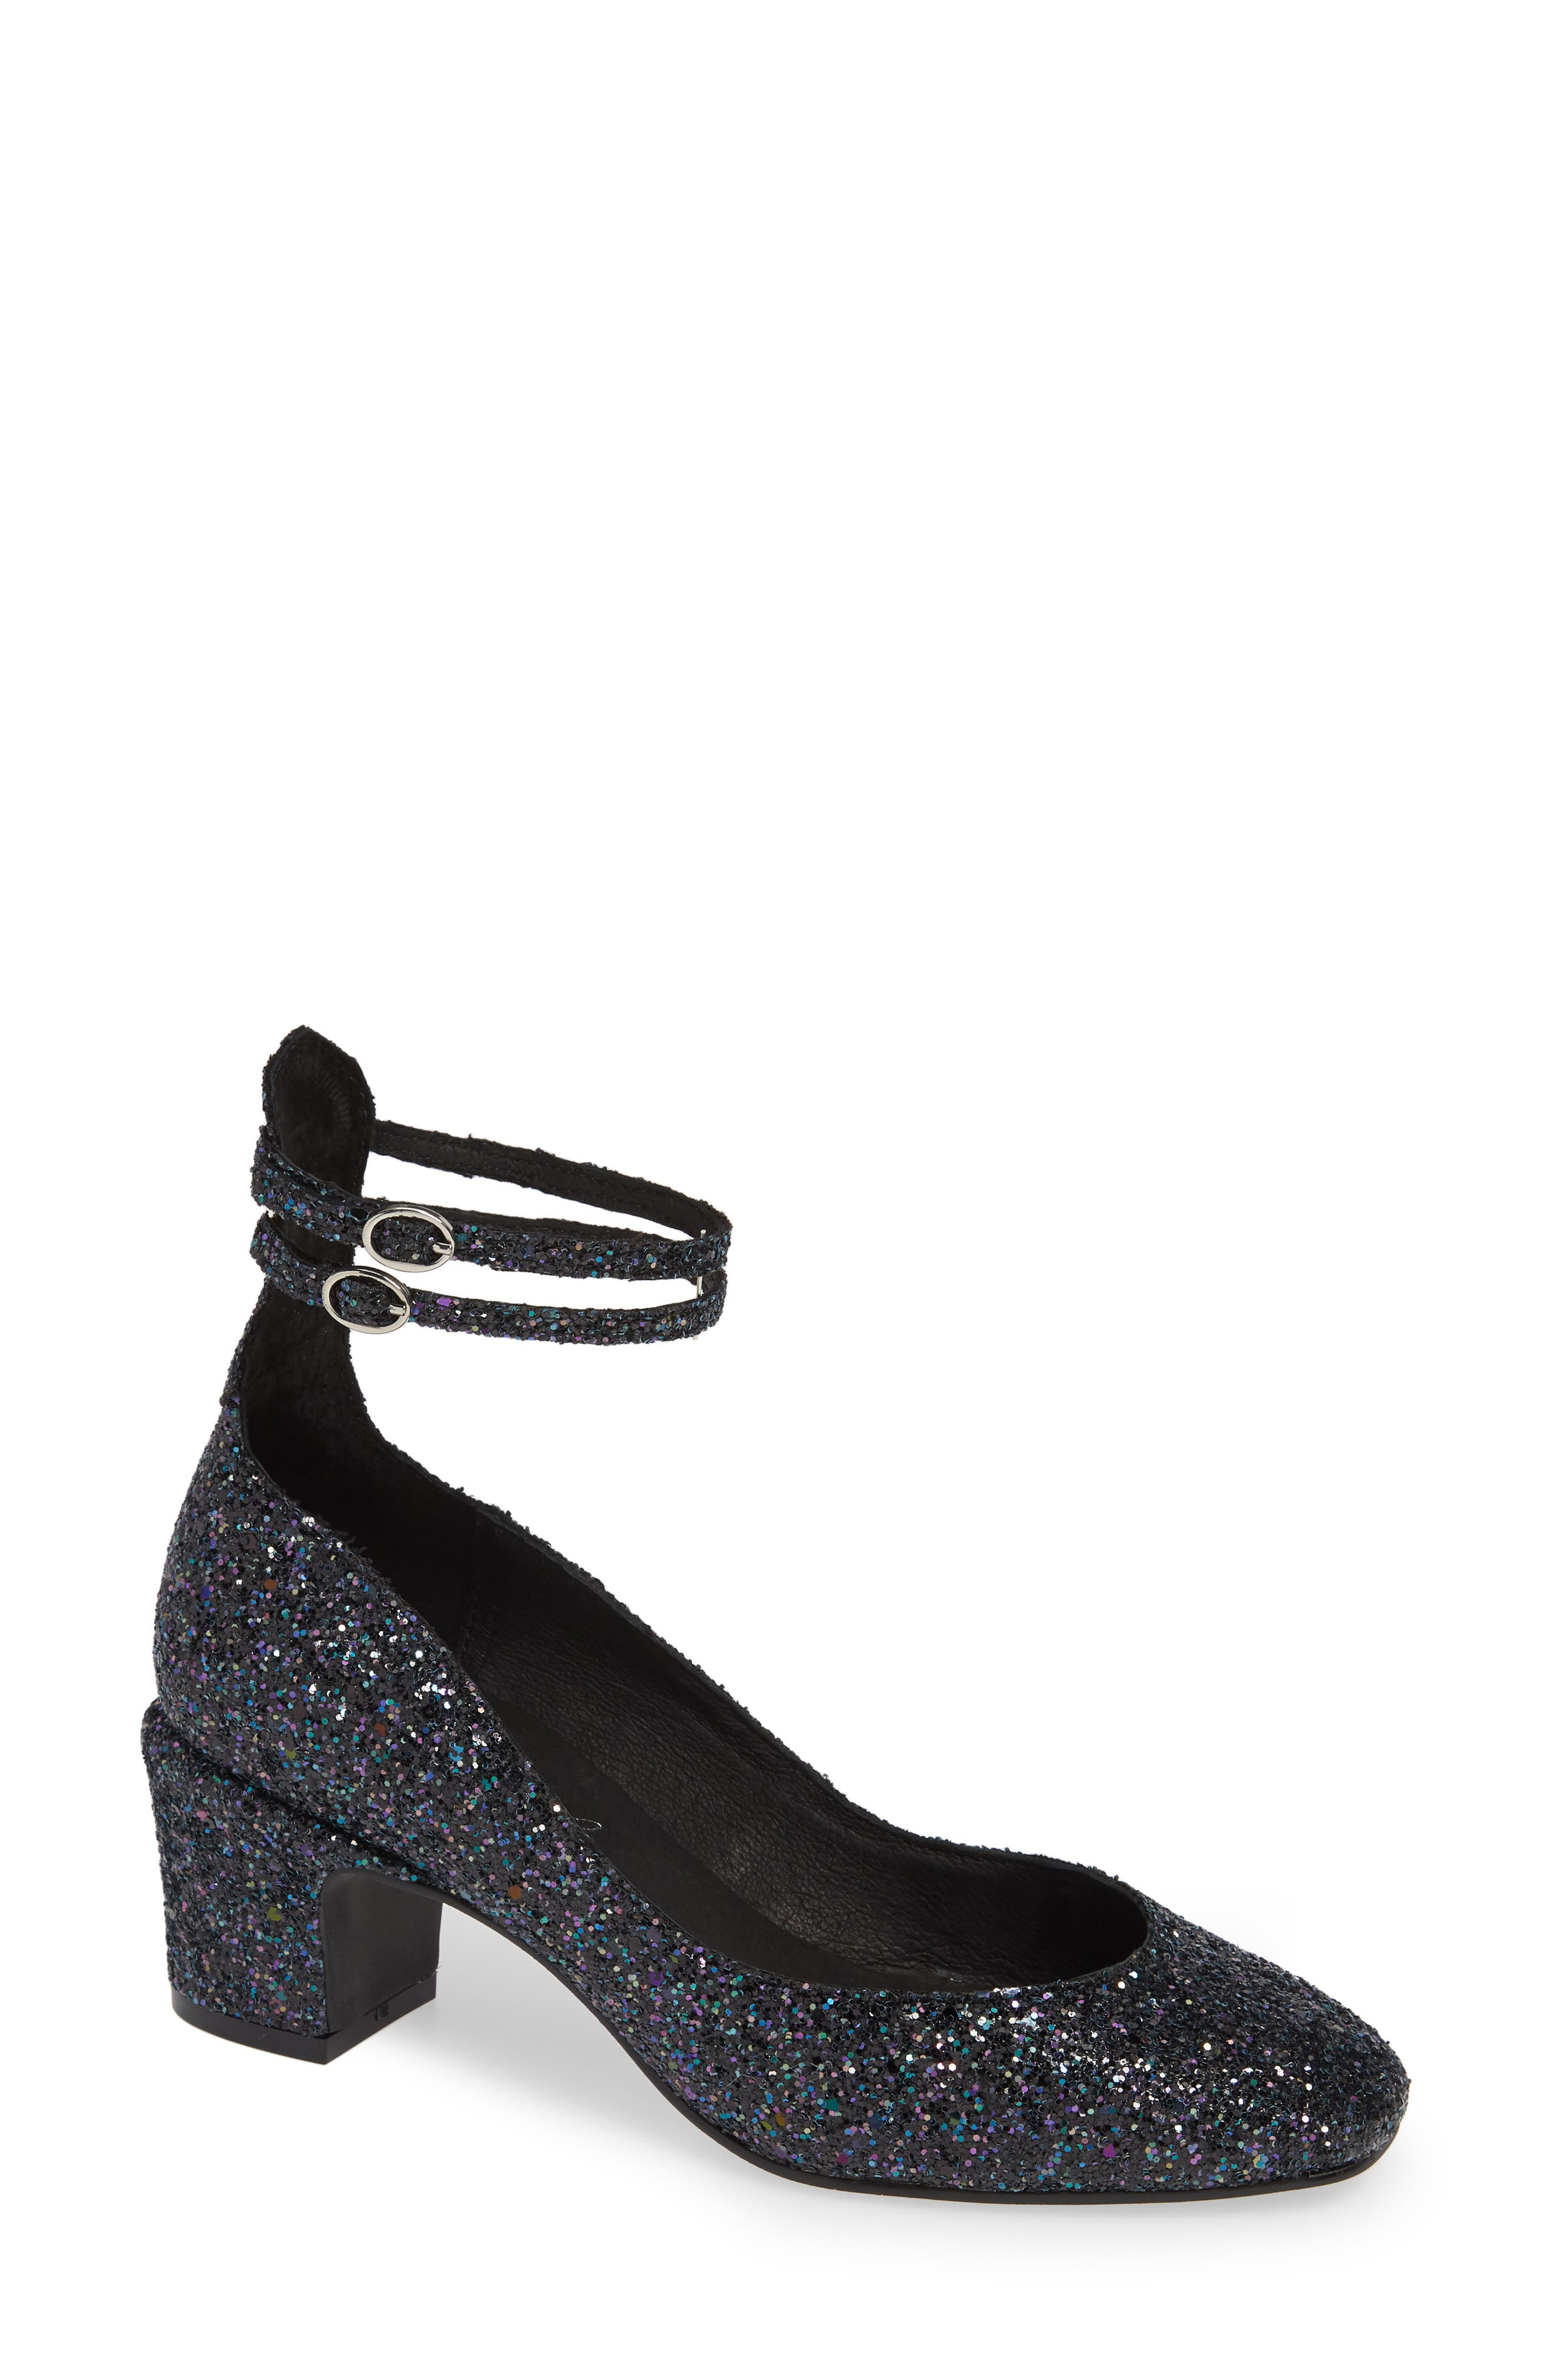 Lana Ankle Strap Pump,                             Main thumbnail 1, color,                             NAVY GLITTER PATENT LEATHER